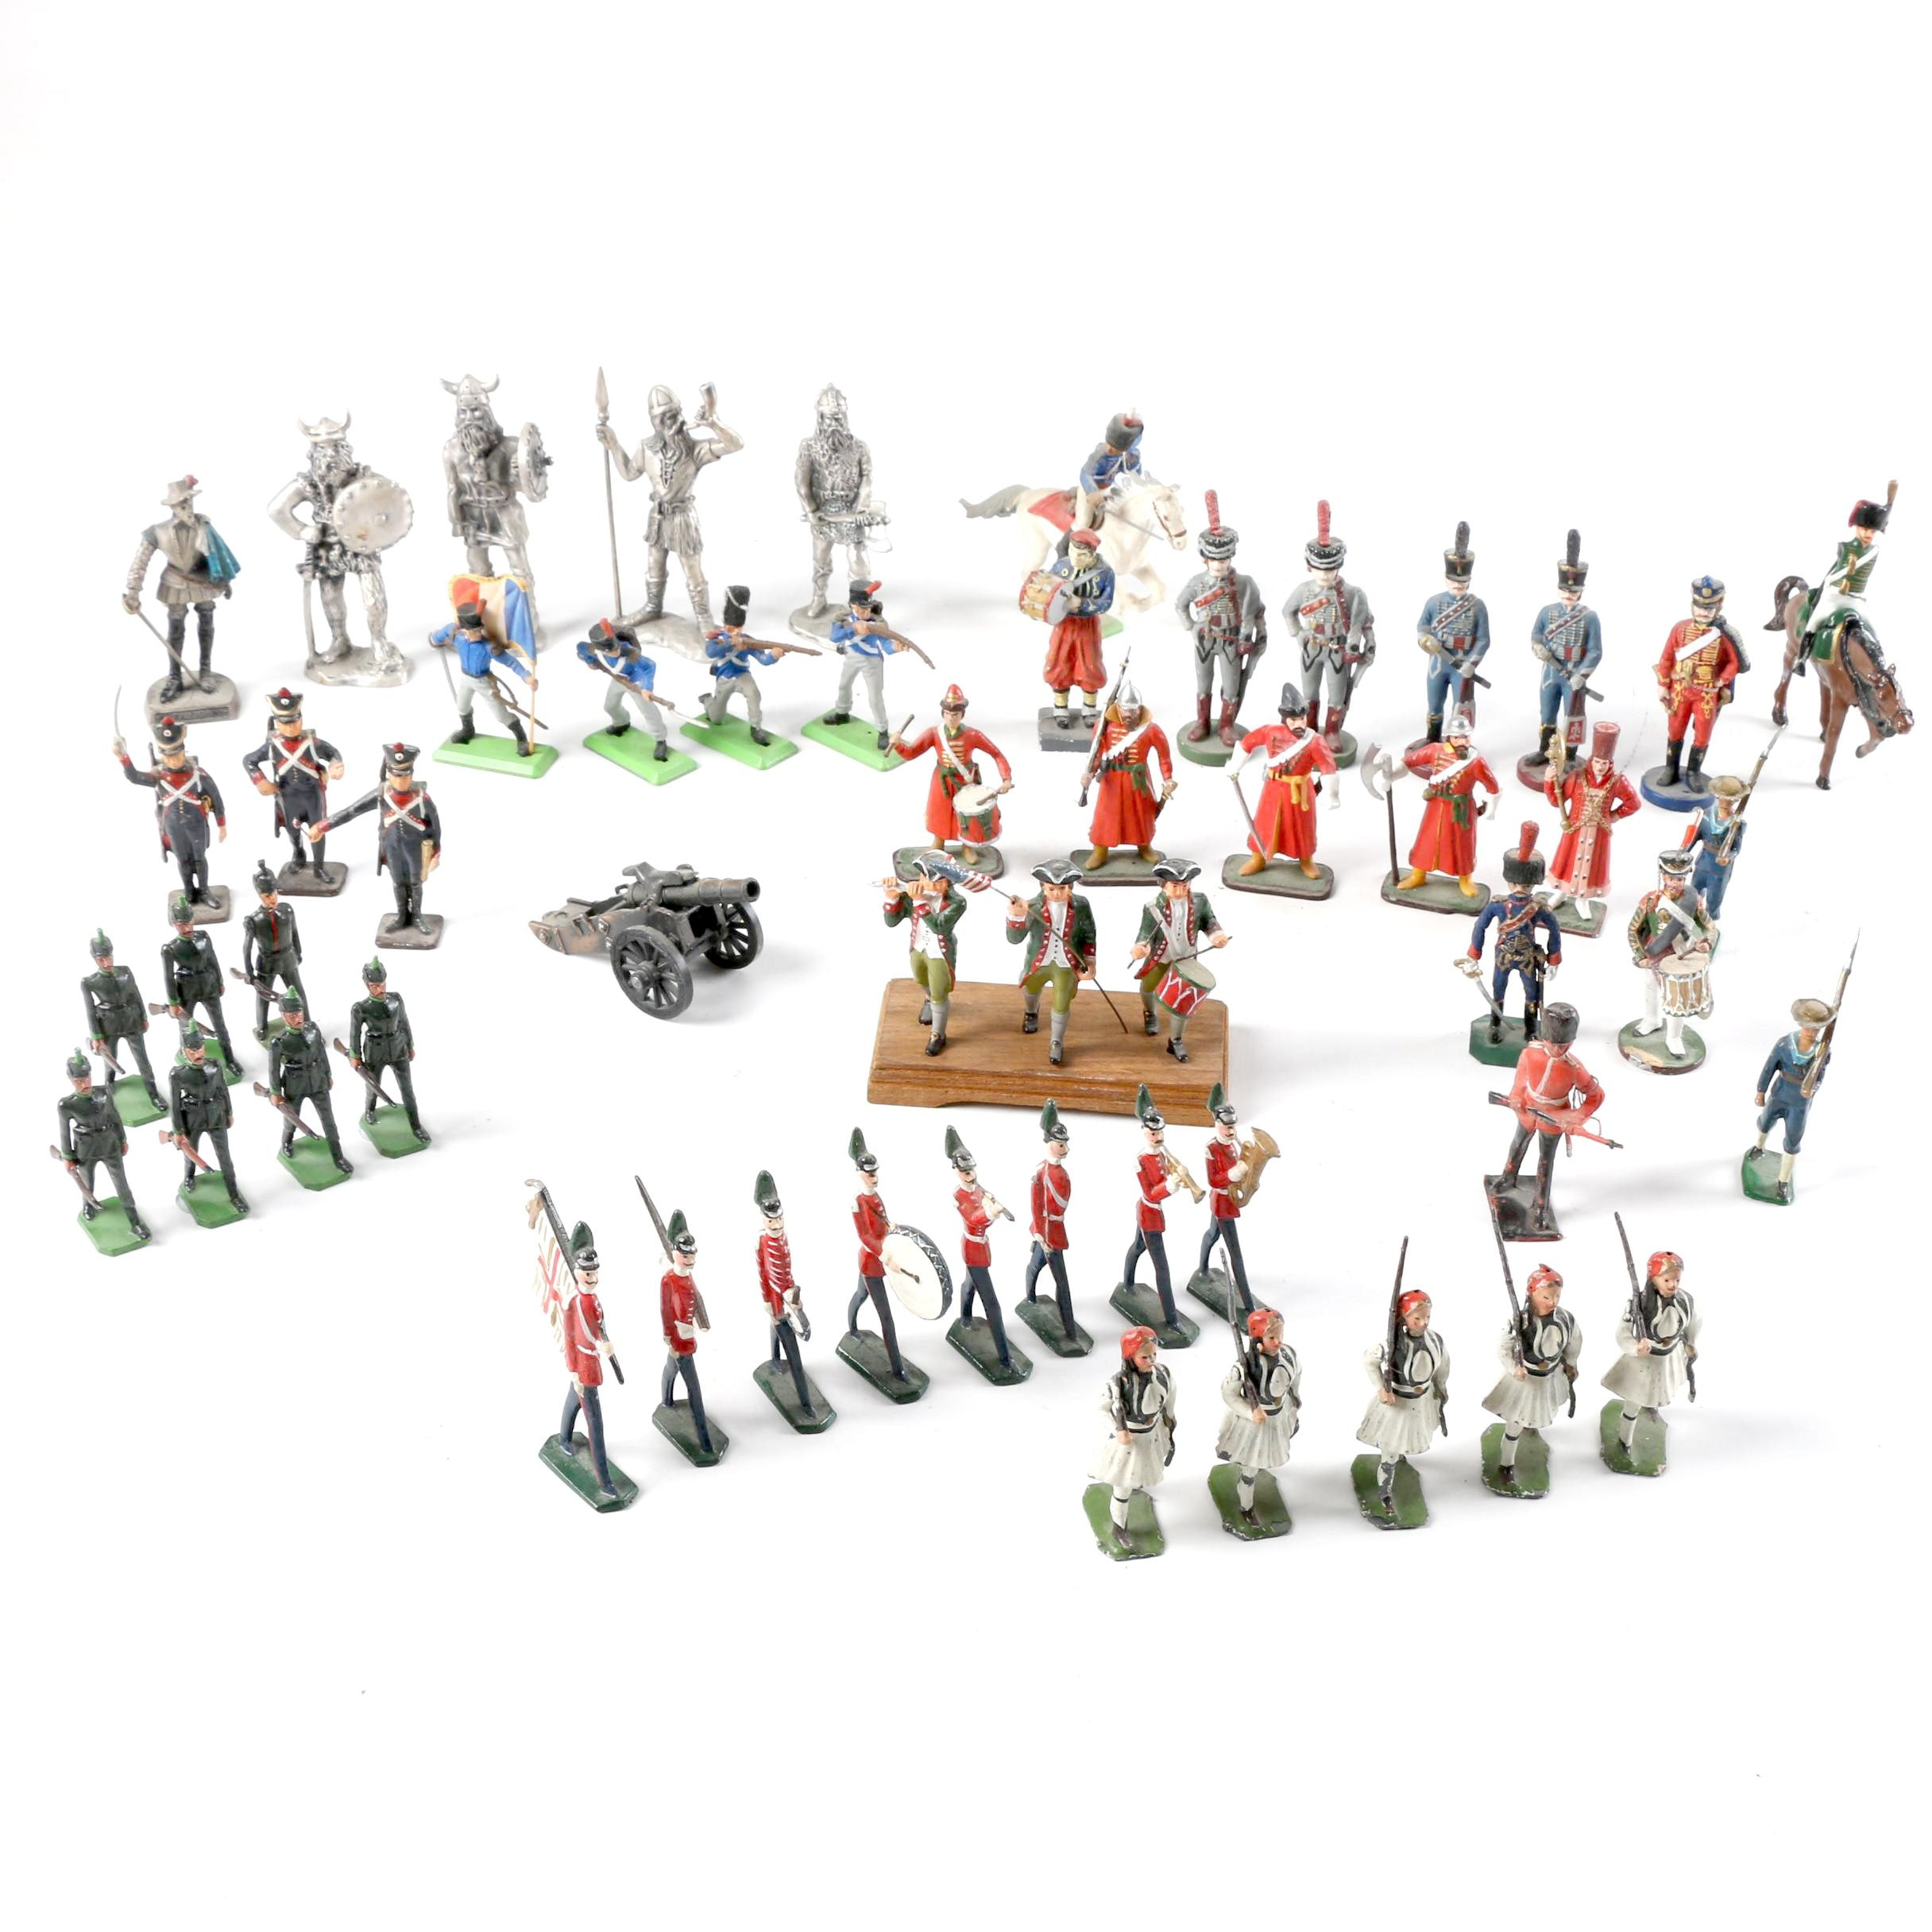 World Military Metal Figurines and Toy Soldiers